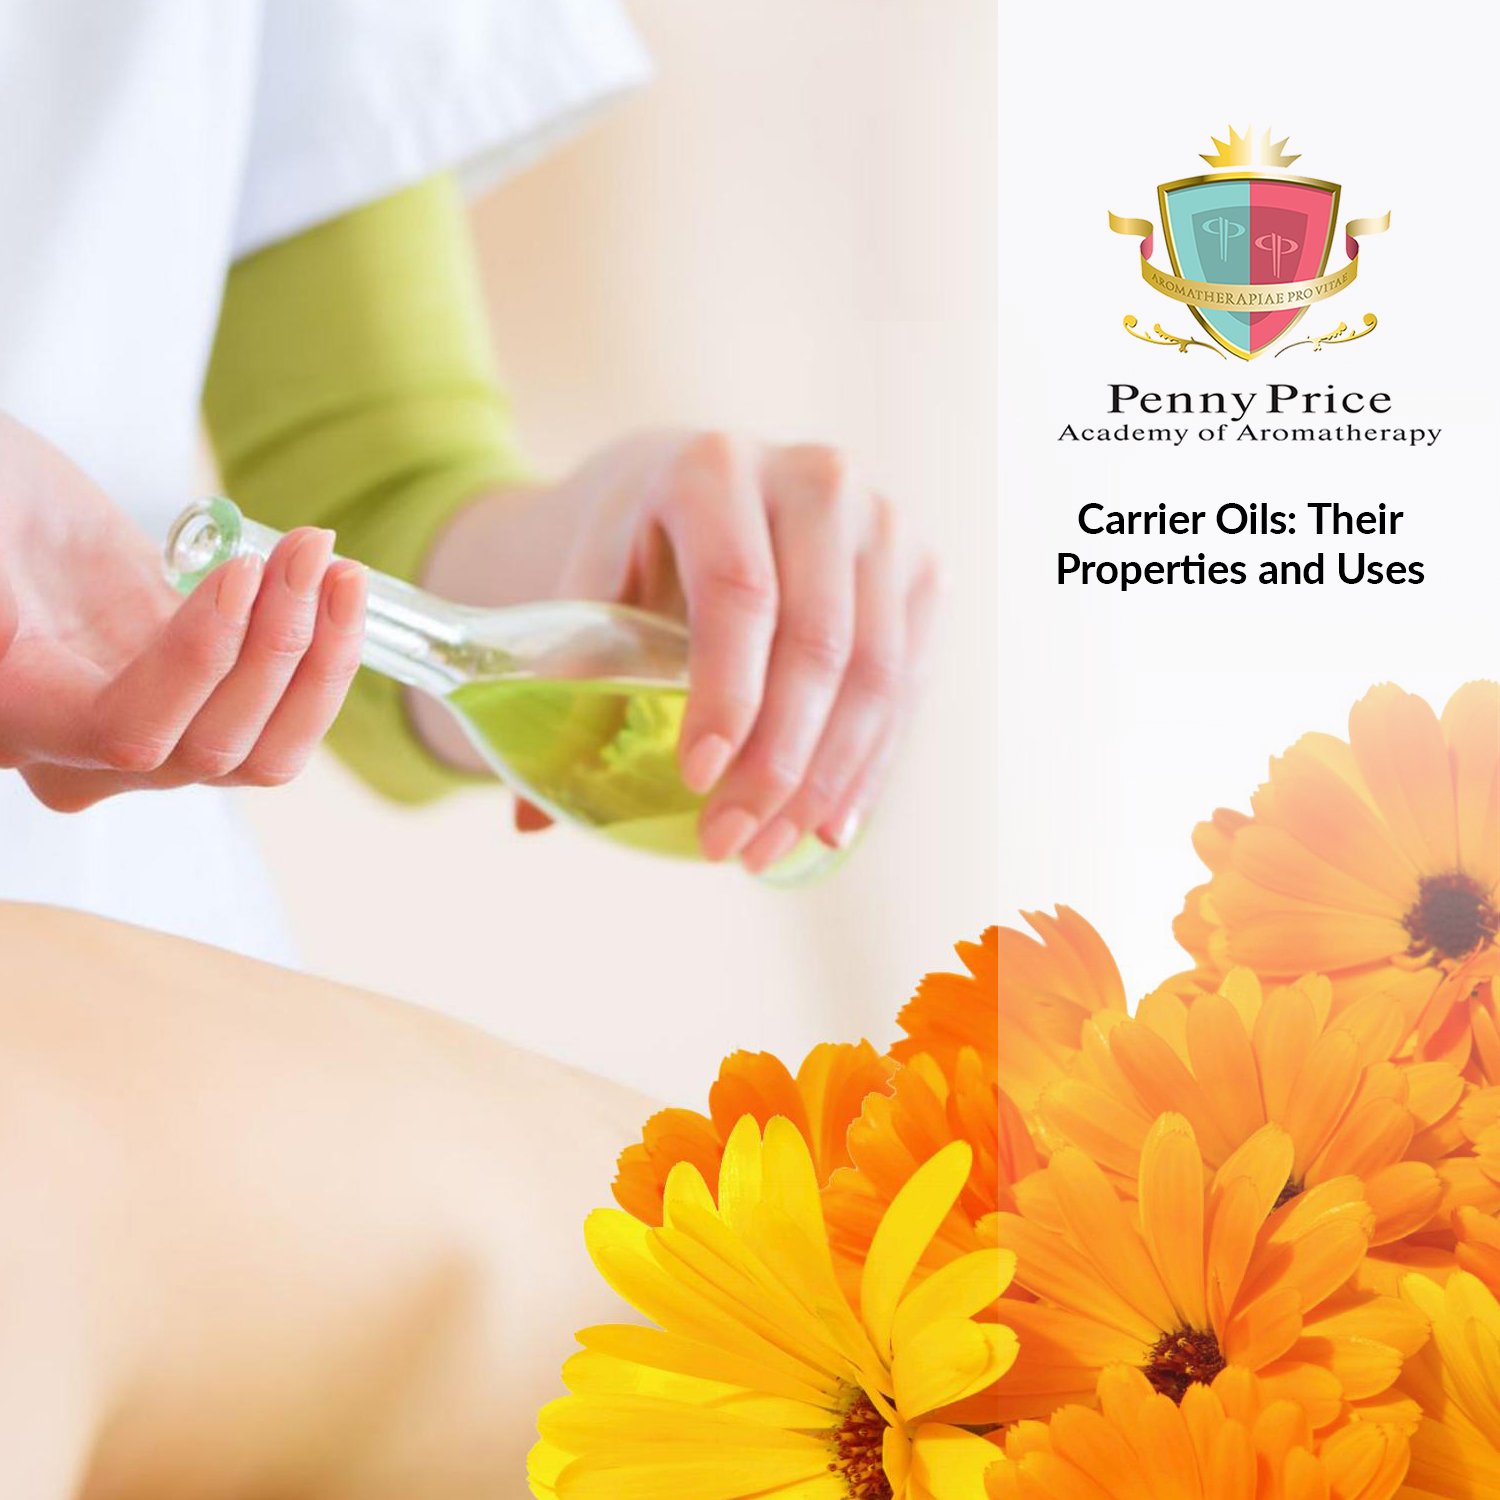 aromatherapy_course_carrier_oils_properties_and_uses